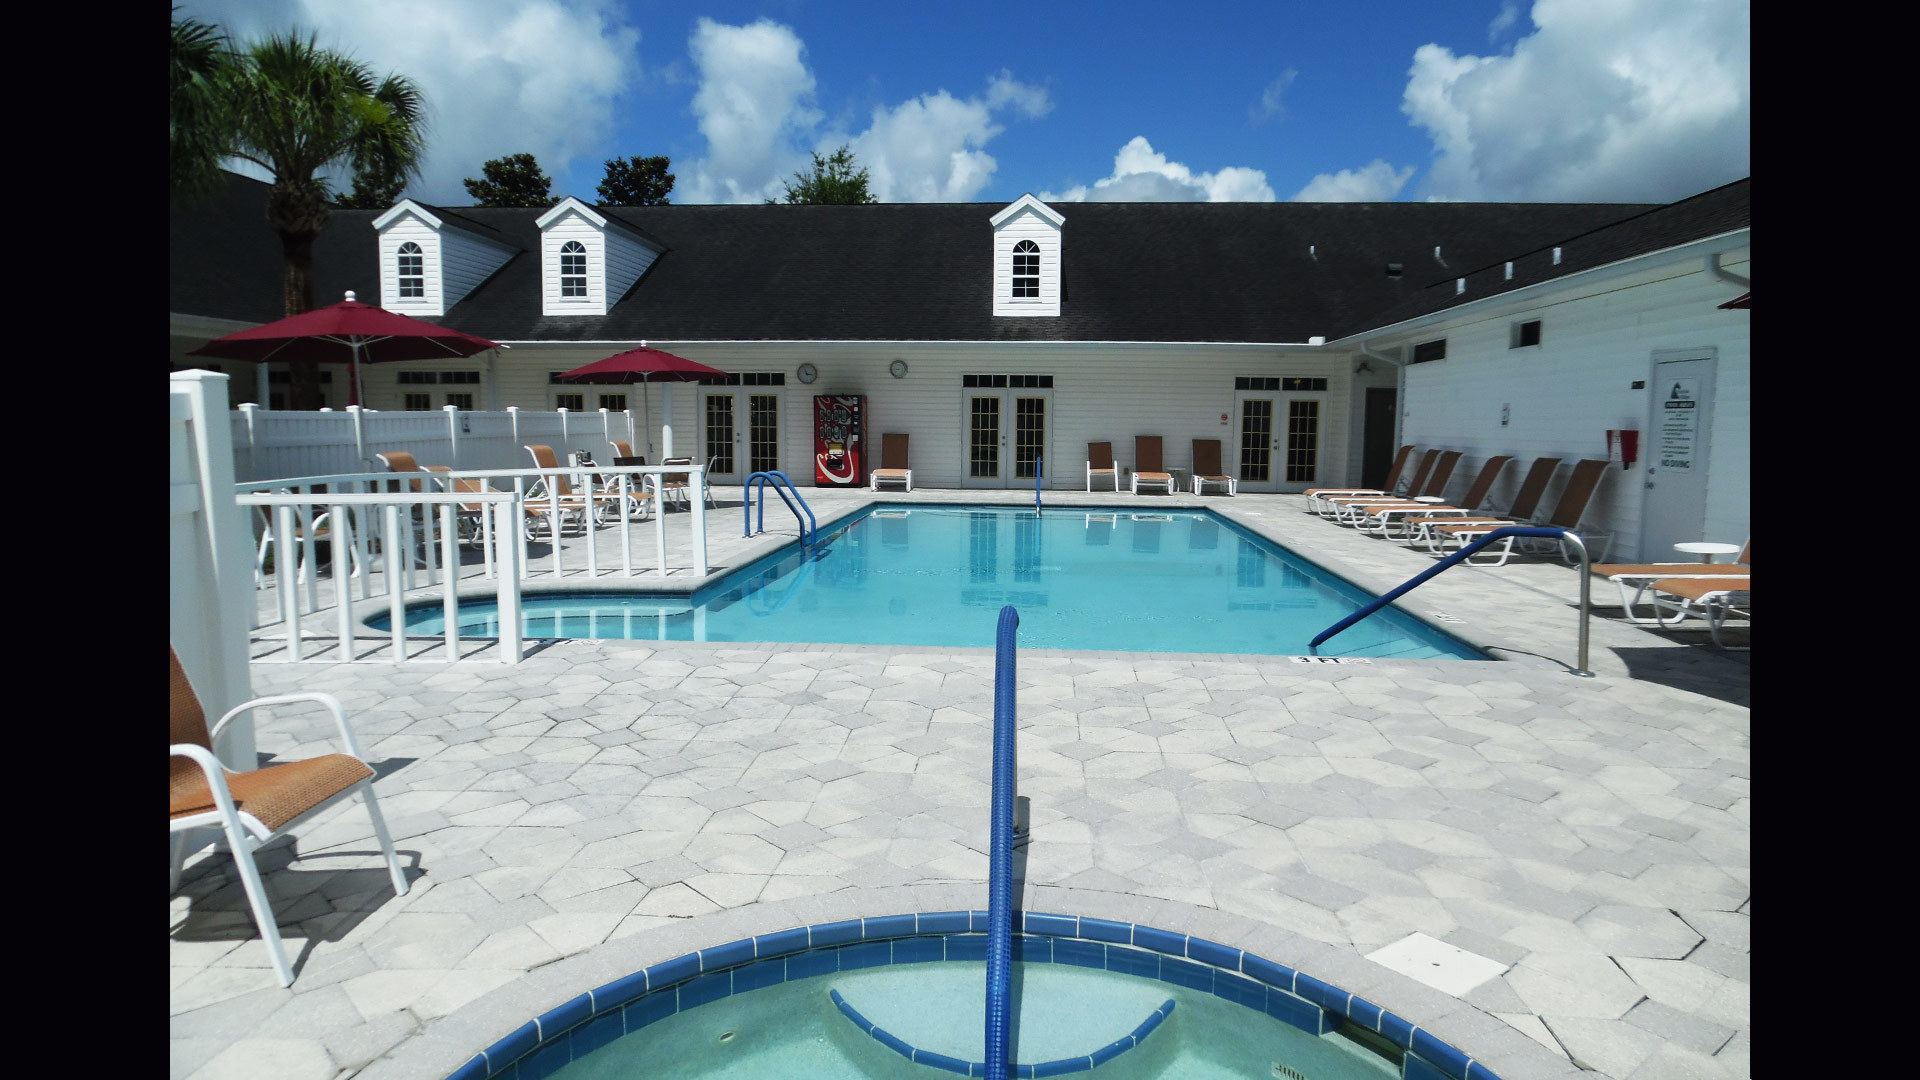 Fairfield Village 55+ Manufactured Homes Community Pool and Hot Tub in Ocala, FL